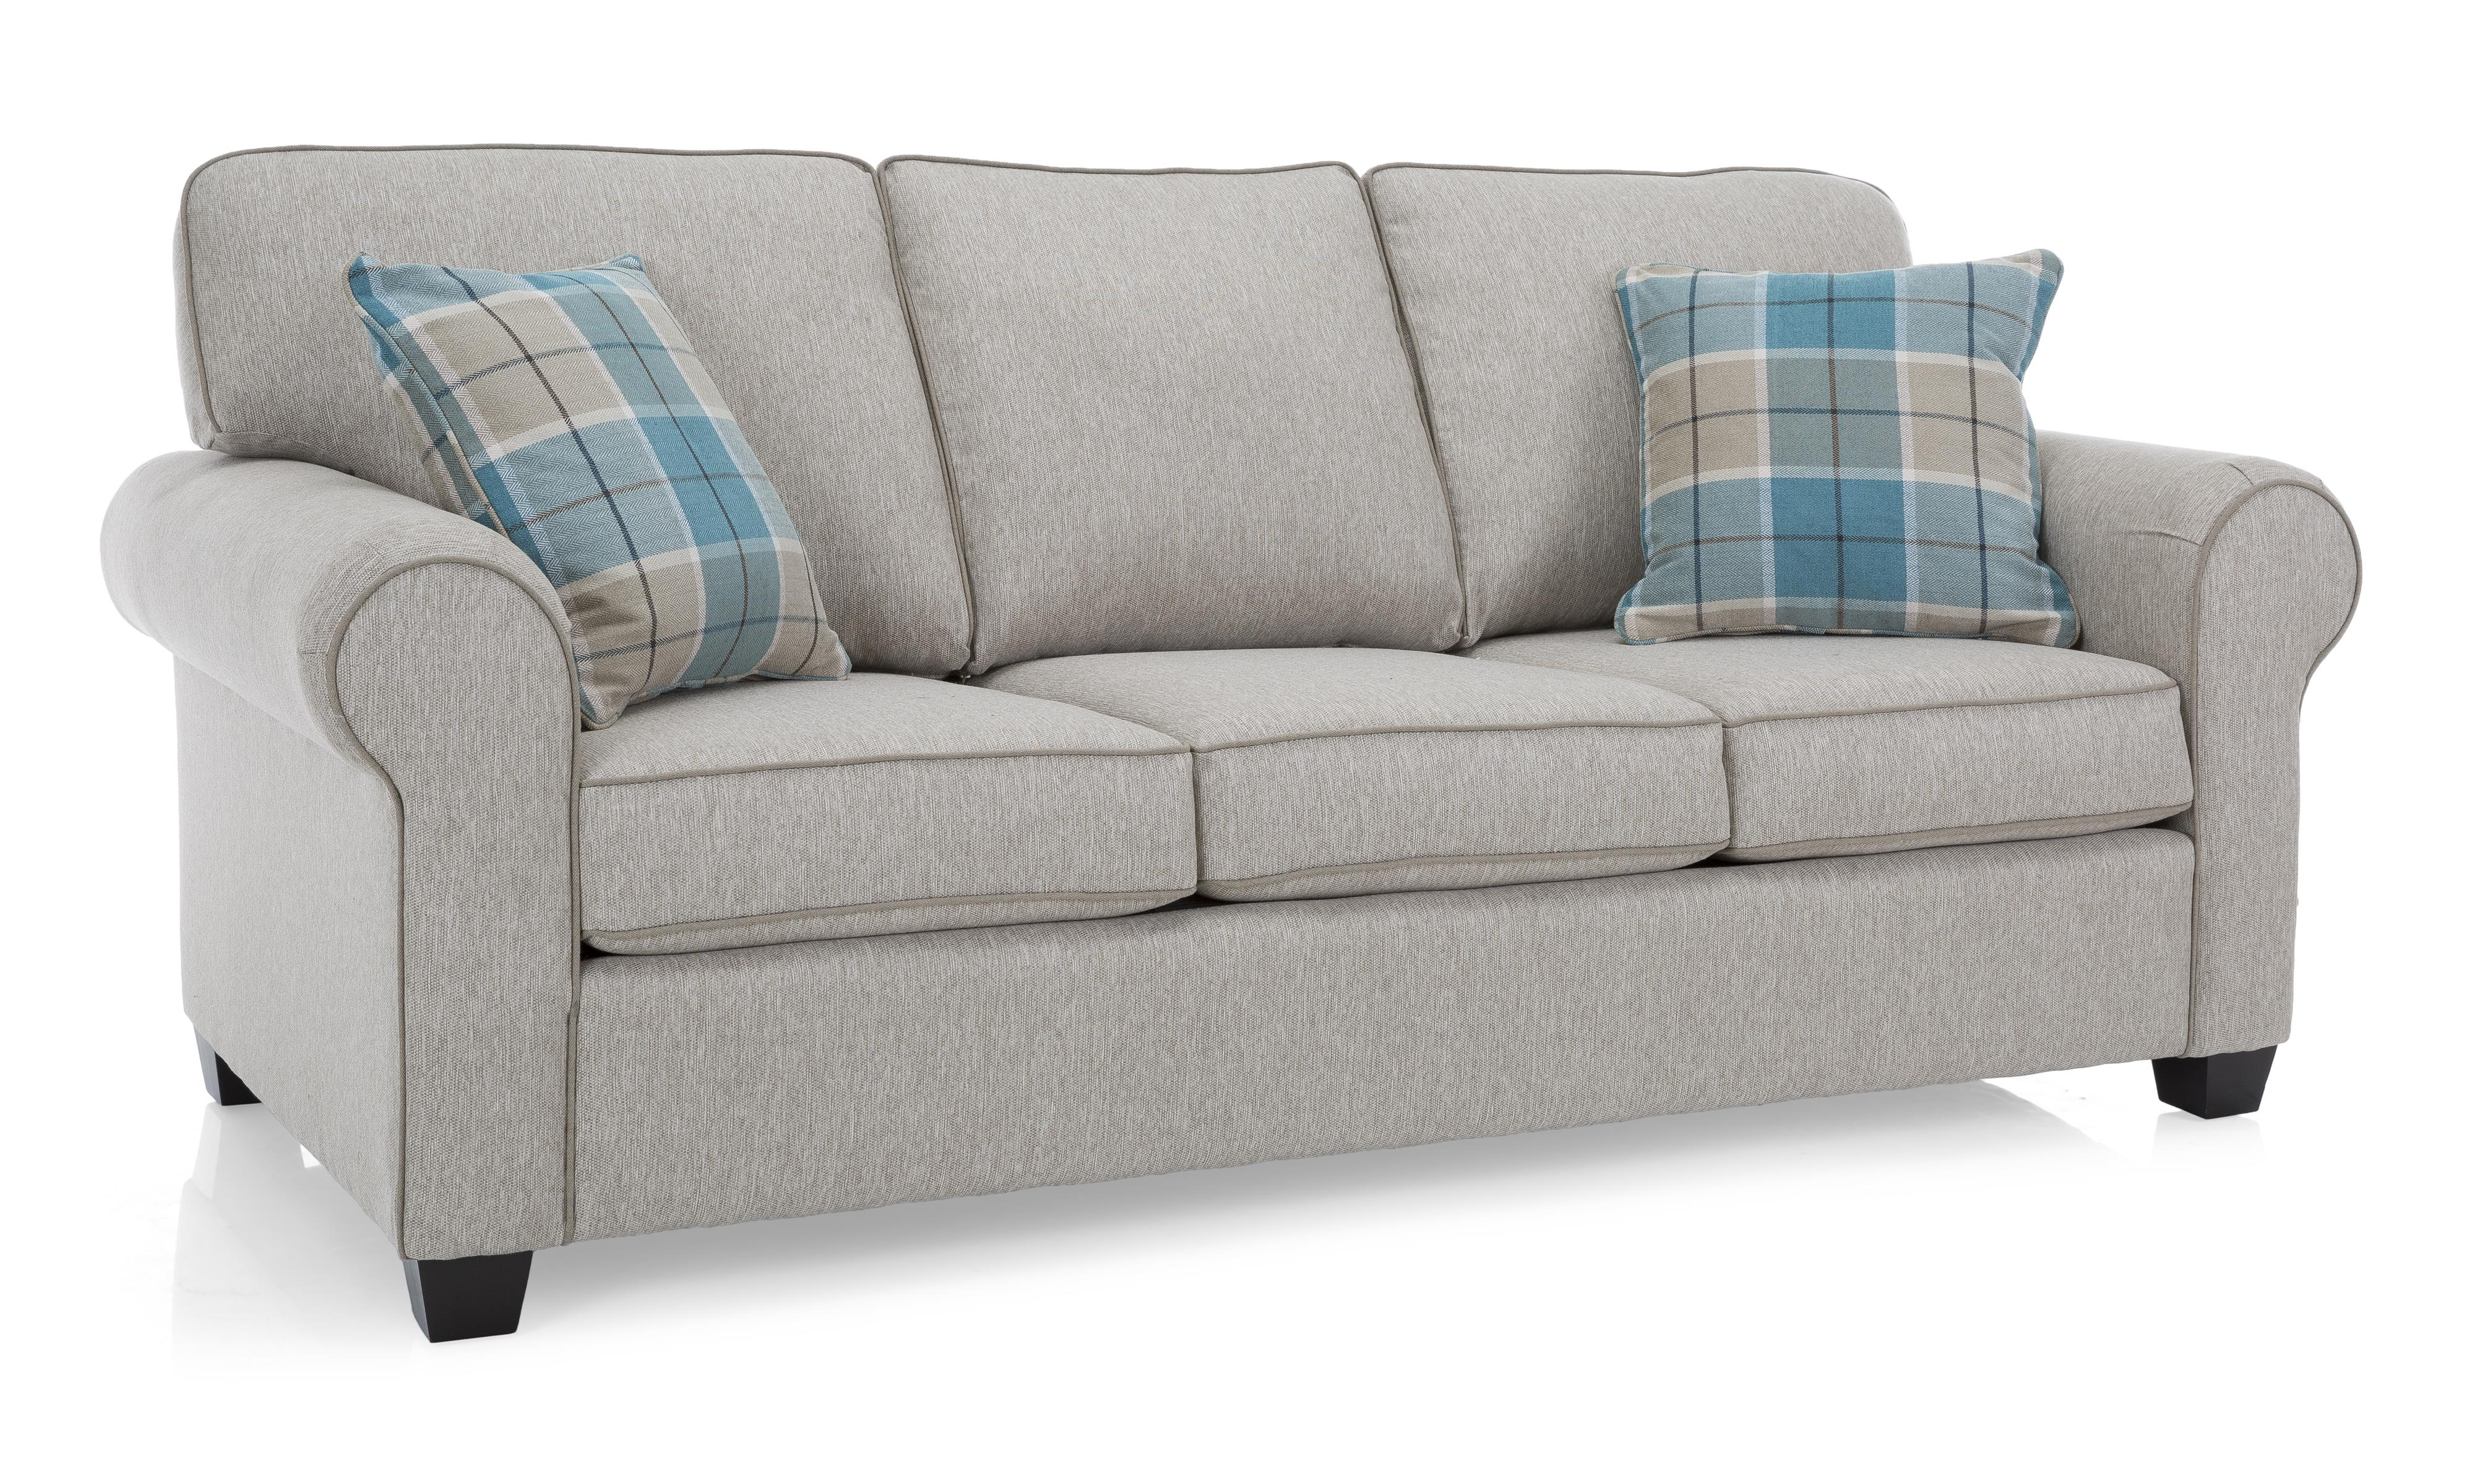 Porter Sofa by Taelor Designs at Bennett's Furniture and Mattresses